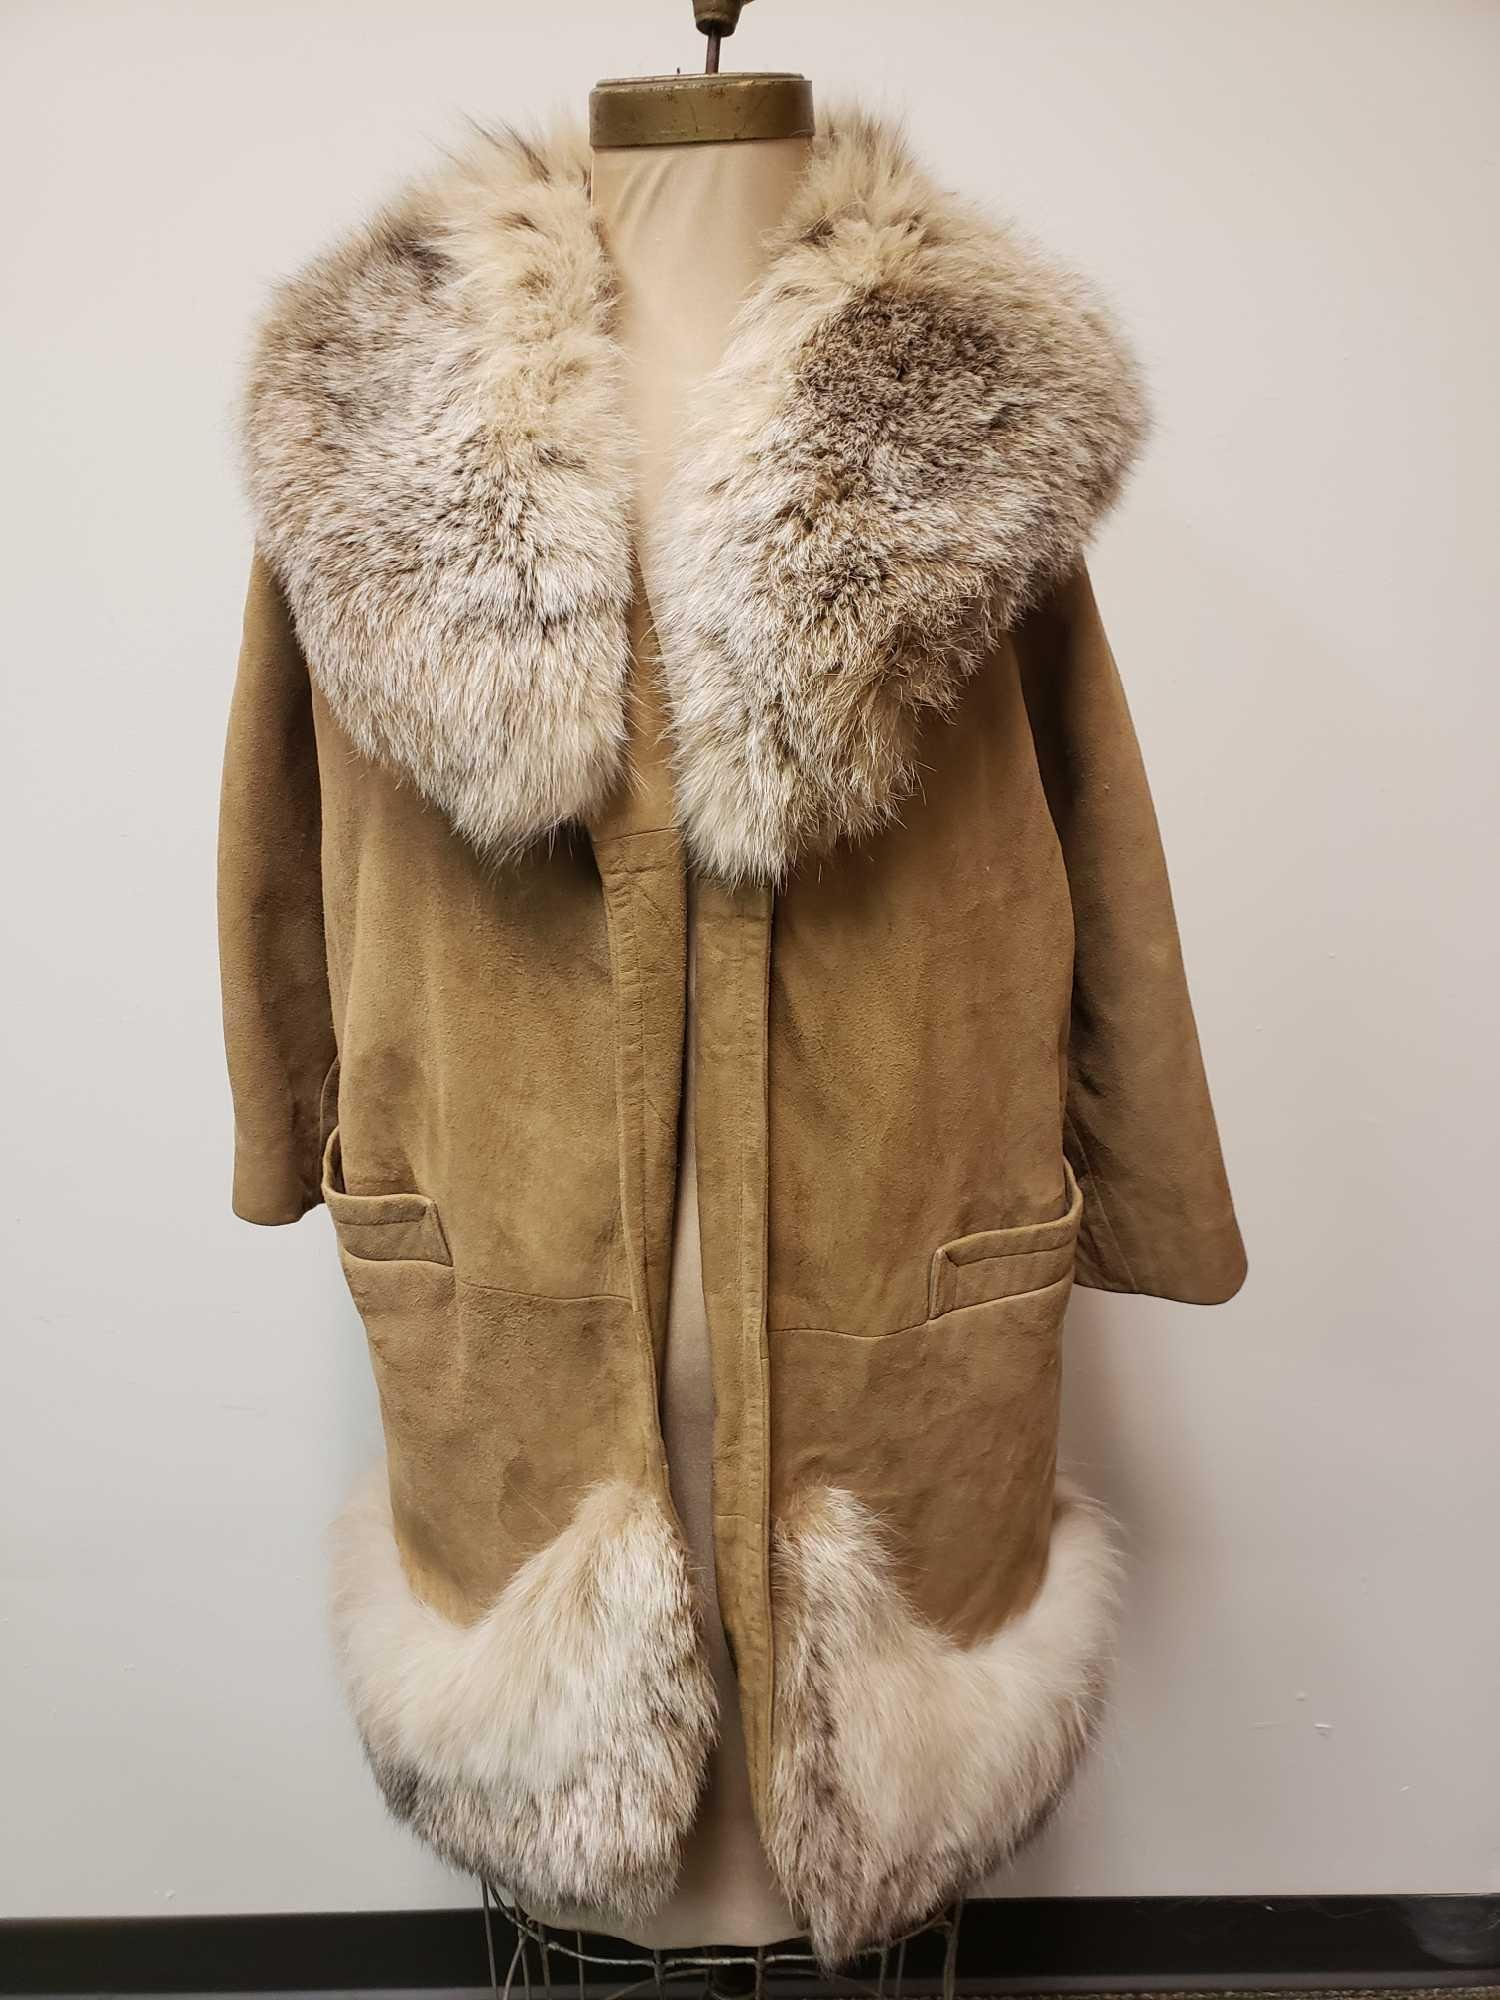 Gano Downs Suede and Fox Fur Jacket